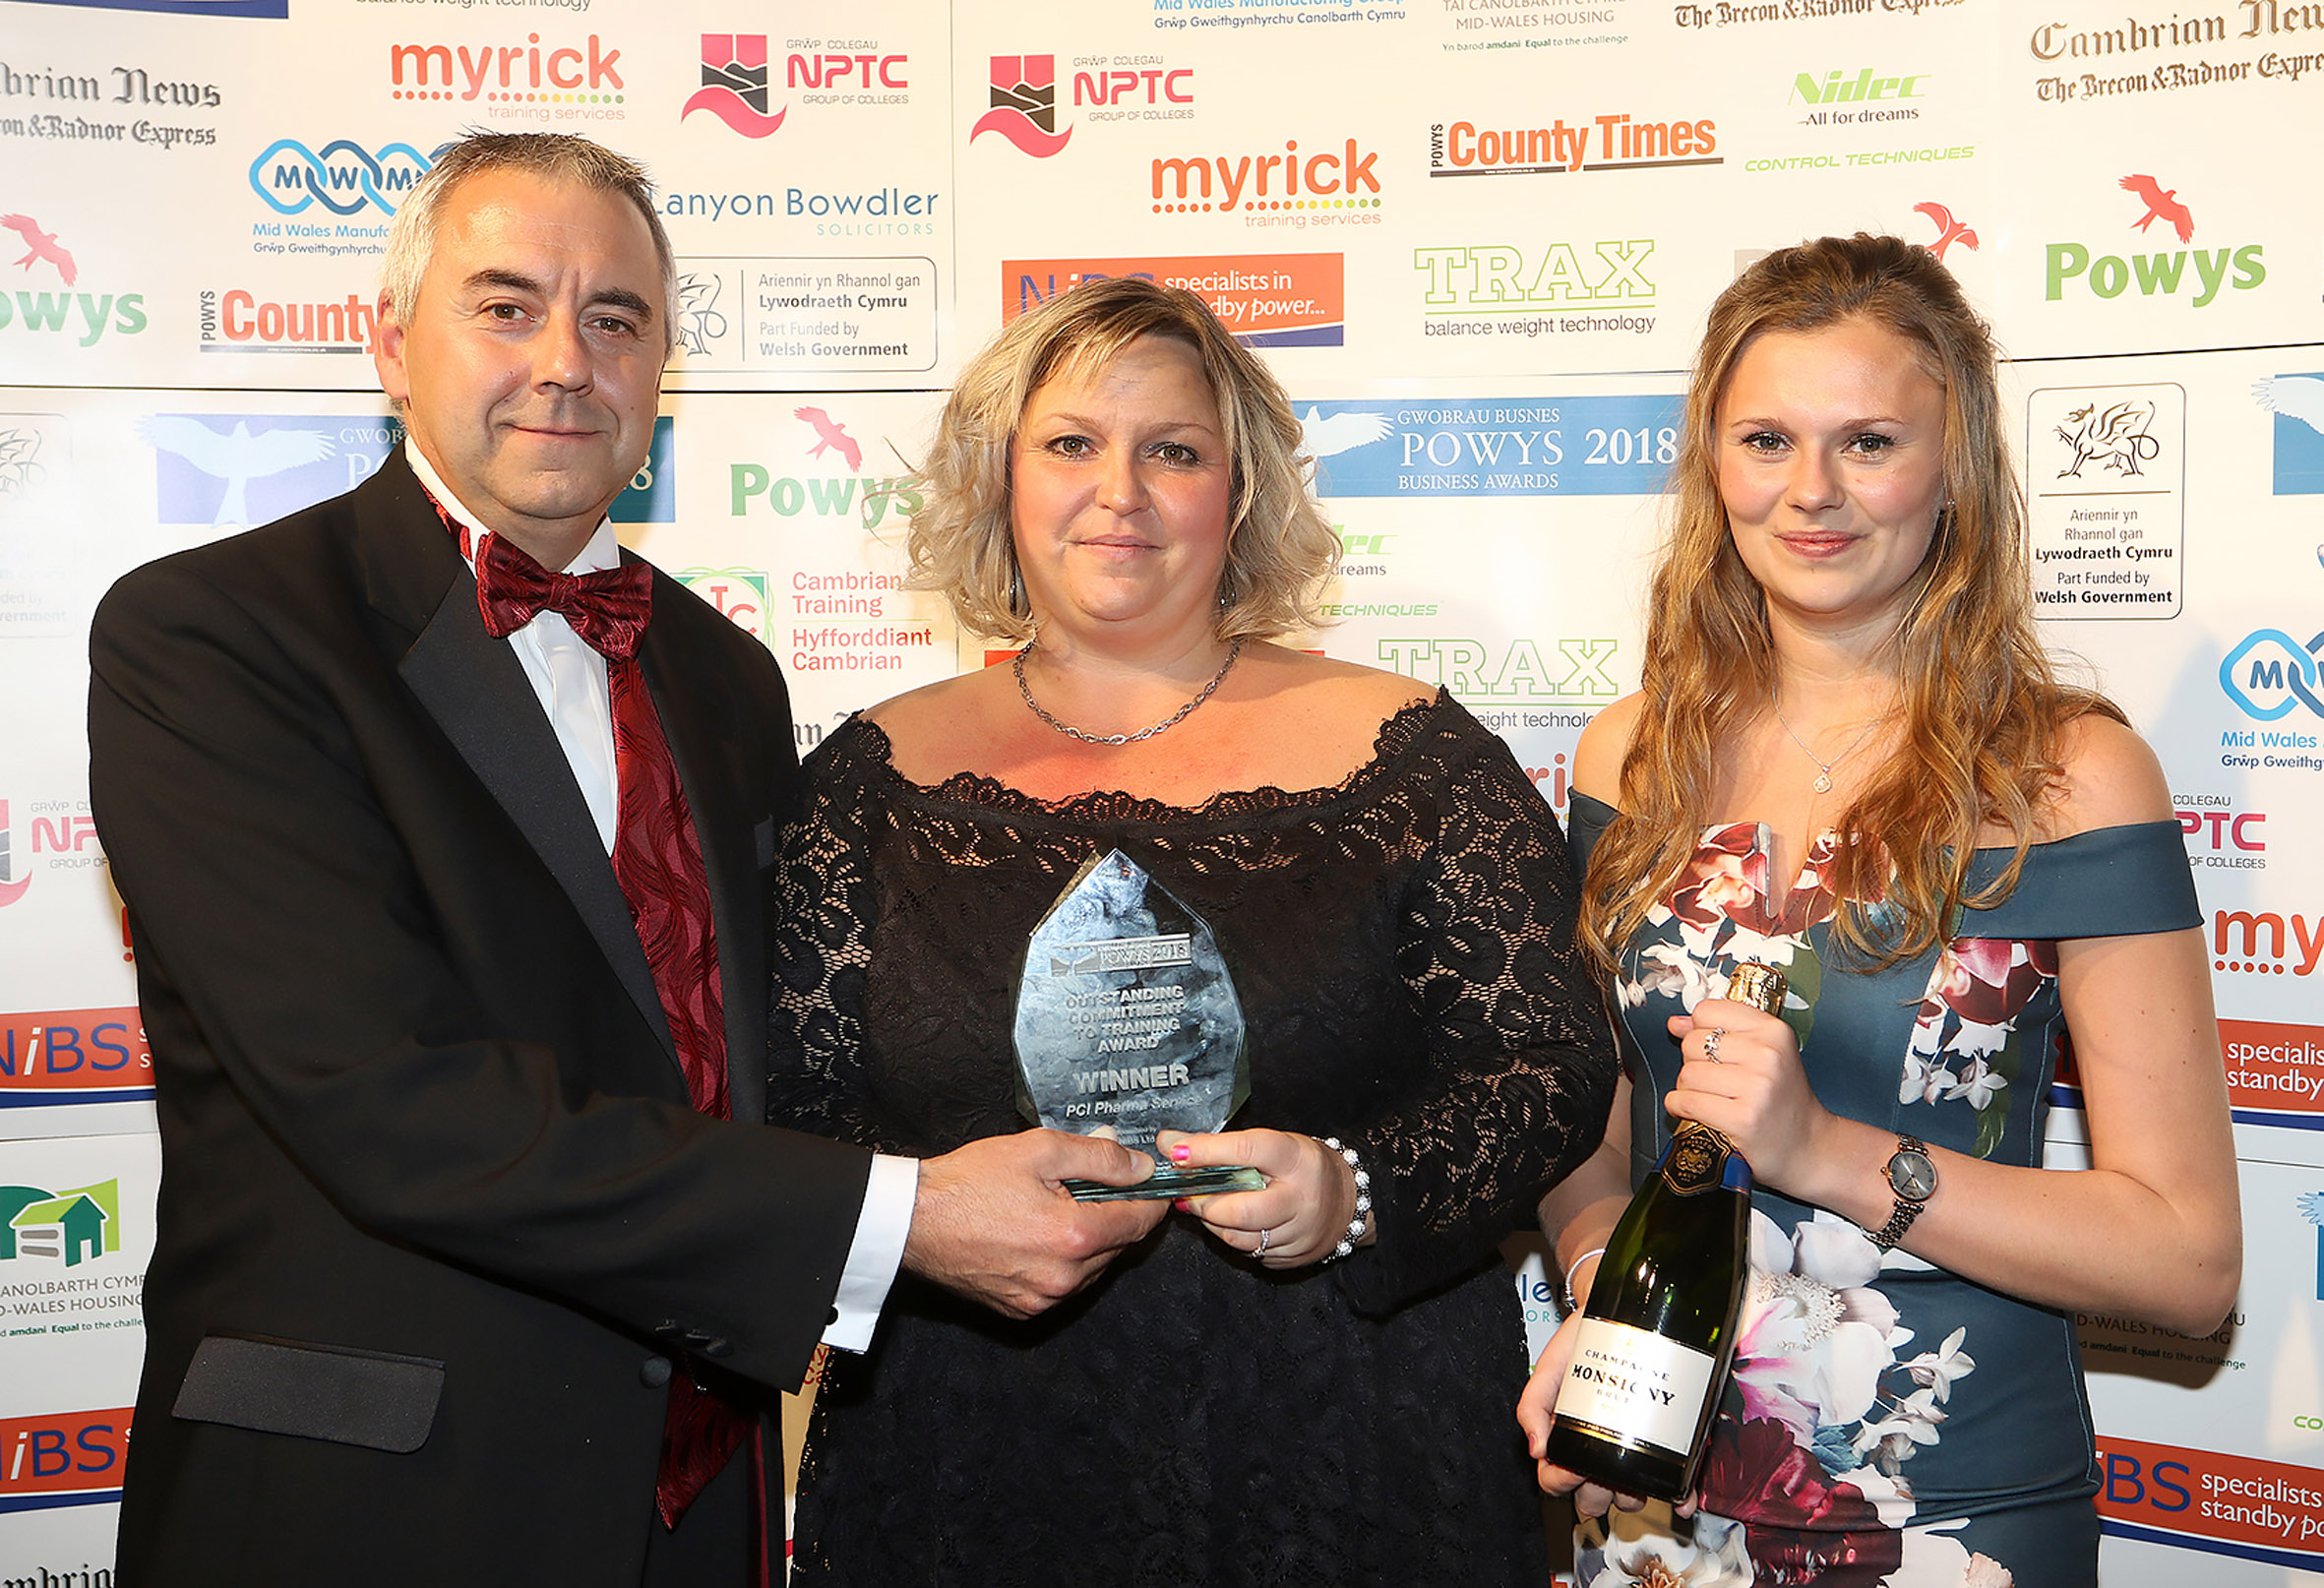 PCI Pharma Services' training supervisor Tracey Lewis and account manager Paige Morgan receive the Outstanding Commitment to Training Award from Chris Gilliard of NiBS Ltd, sponsor.